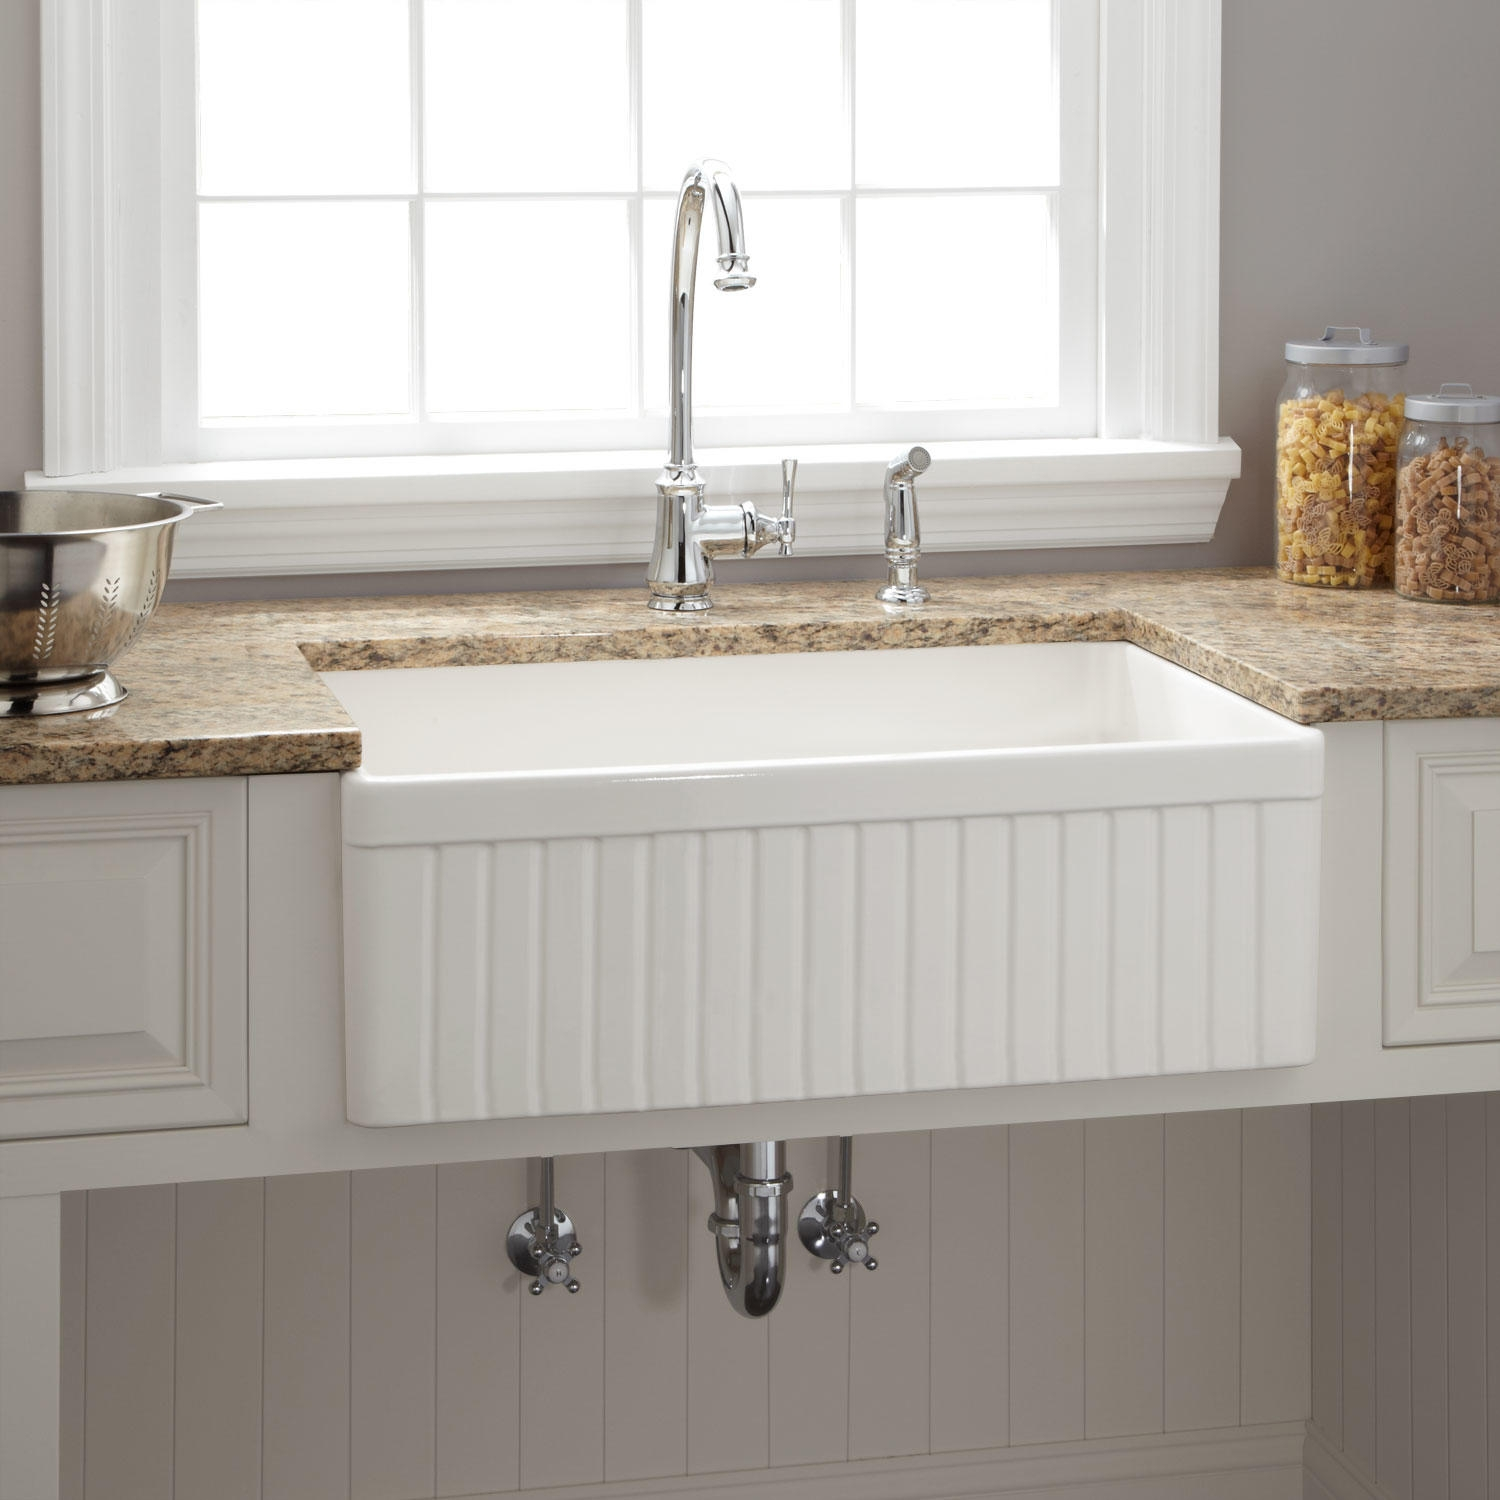 Ideas, white divided farmhouse sink best sink decoration pertaining to proportions 1500 x 1500  .